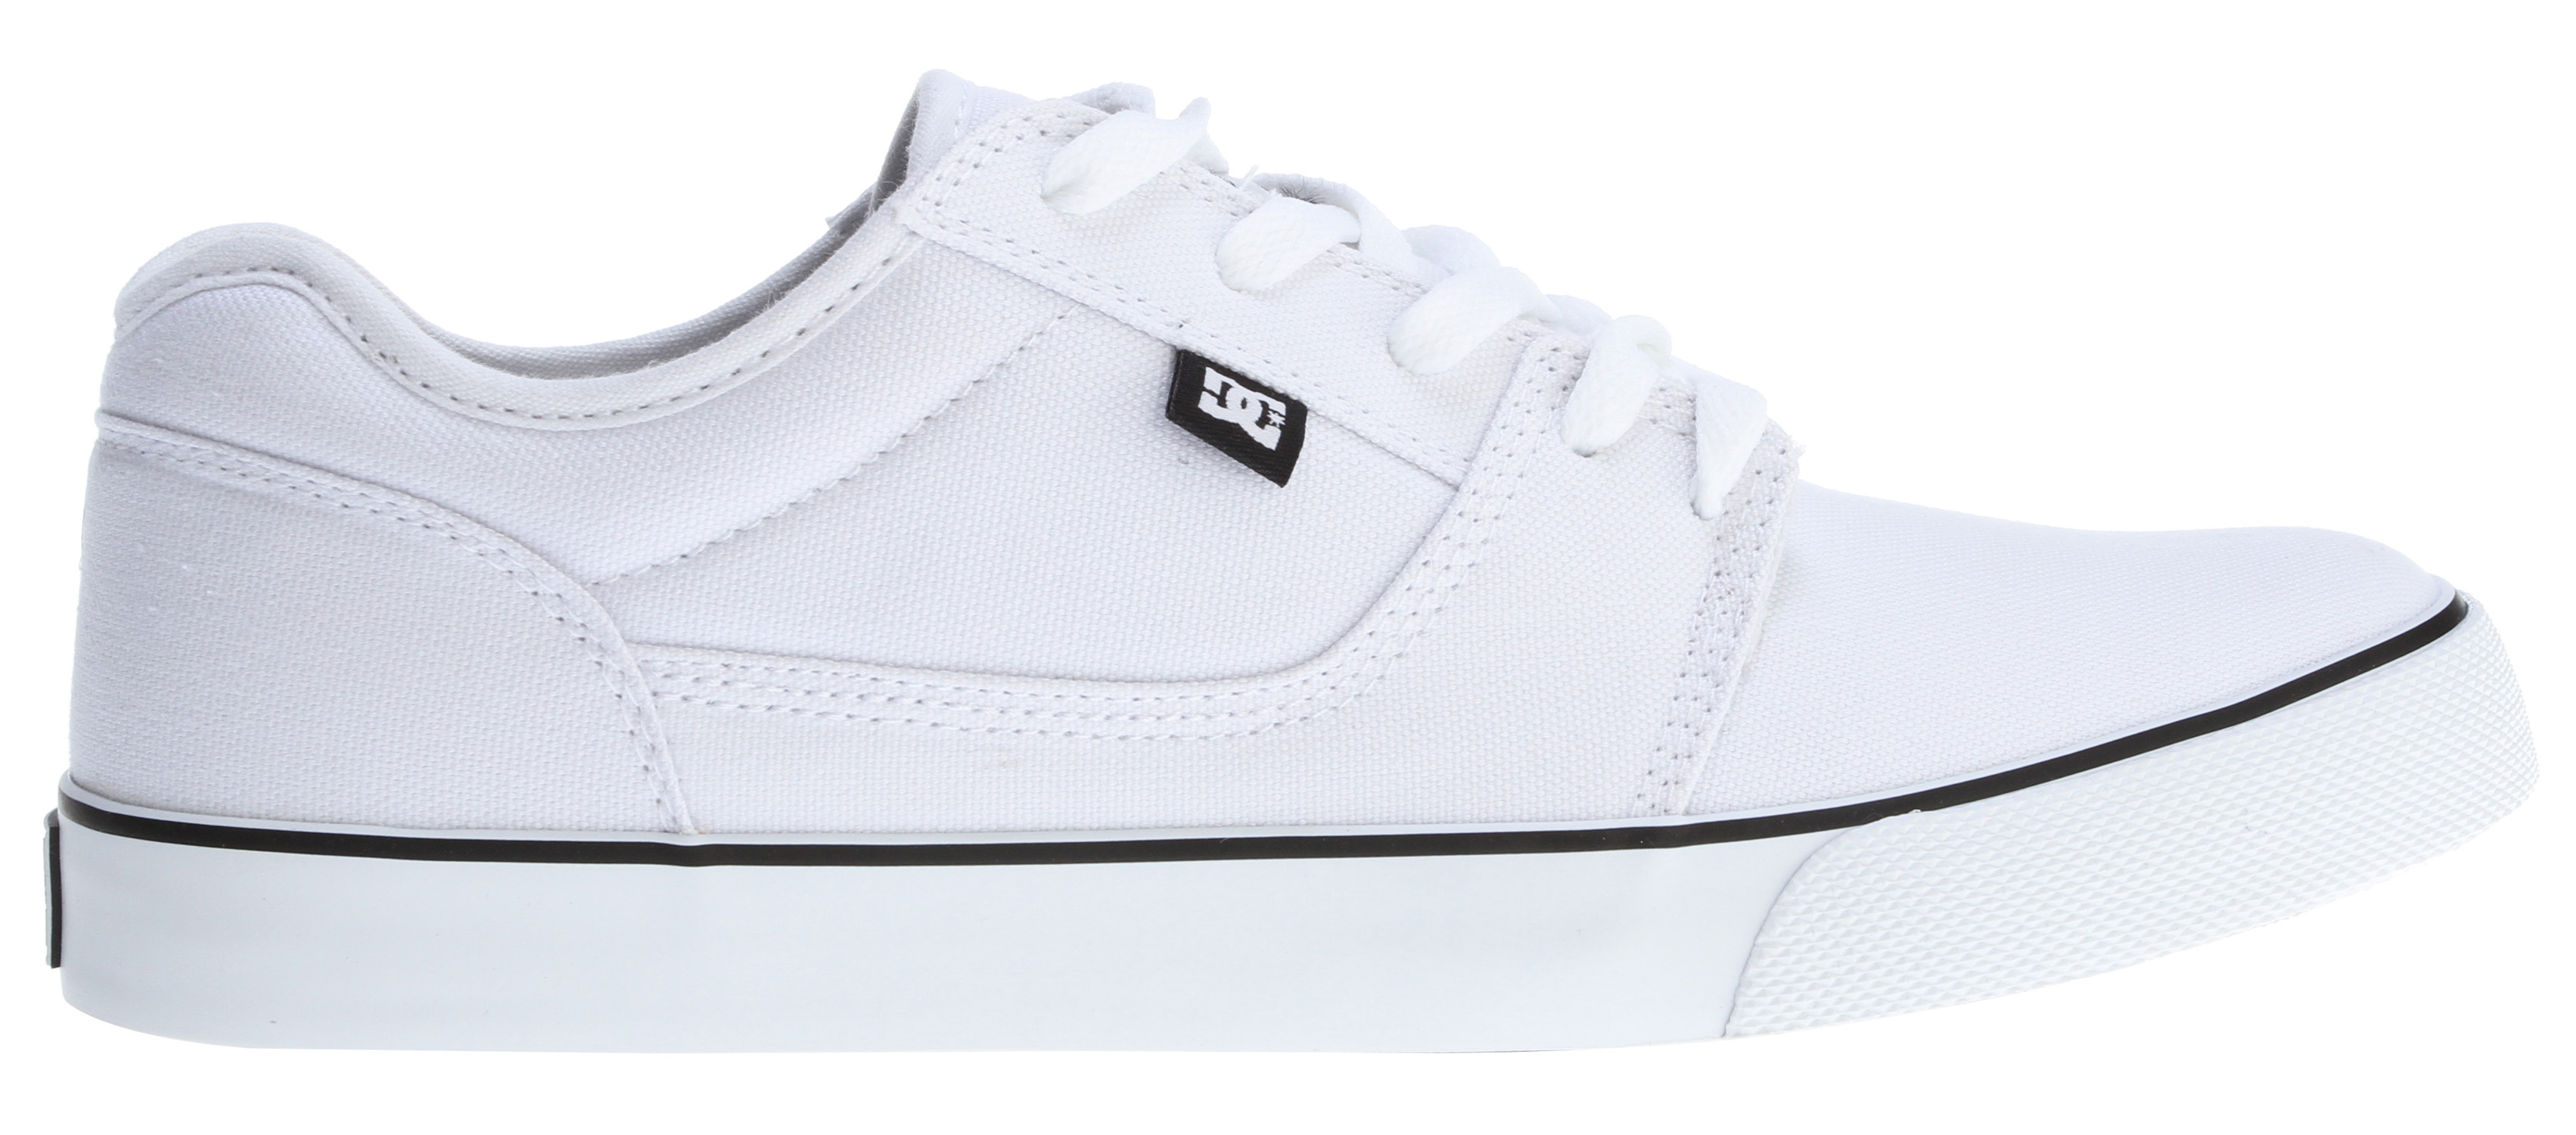 "Skateboard Key Features of the DC Bristol TX Skate Shoes: Textile Upper Vent Holes In Upper For Breathability Vulcanized Construction For Great Board Feel And Sole Flex Abrasion- Resistant Sticky Rubber Outsole DC's Trademarked ""Pill Pattern"" Bottom. - $38.95"